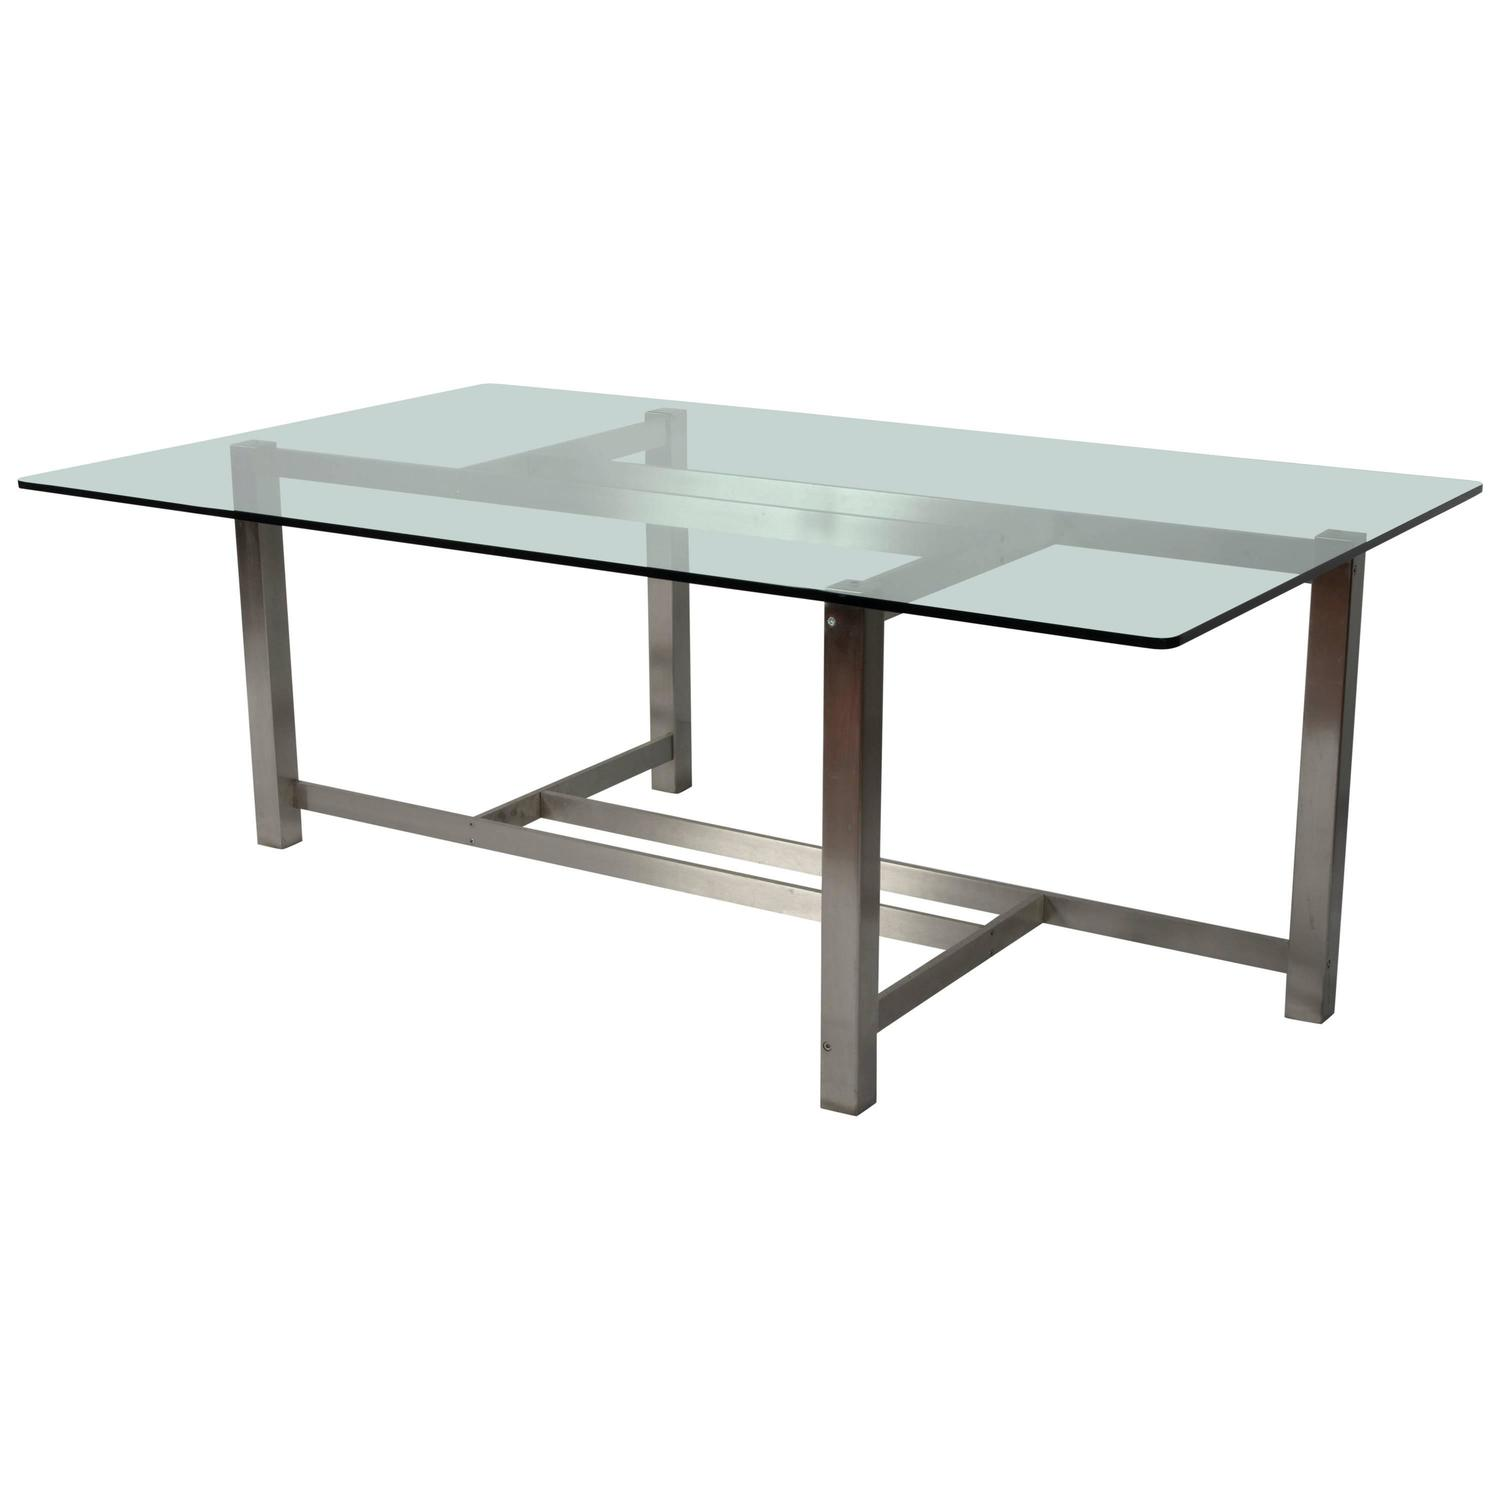 Forma Nova Double Sided Desk or Center Table For Sale at